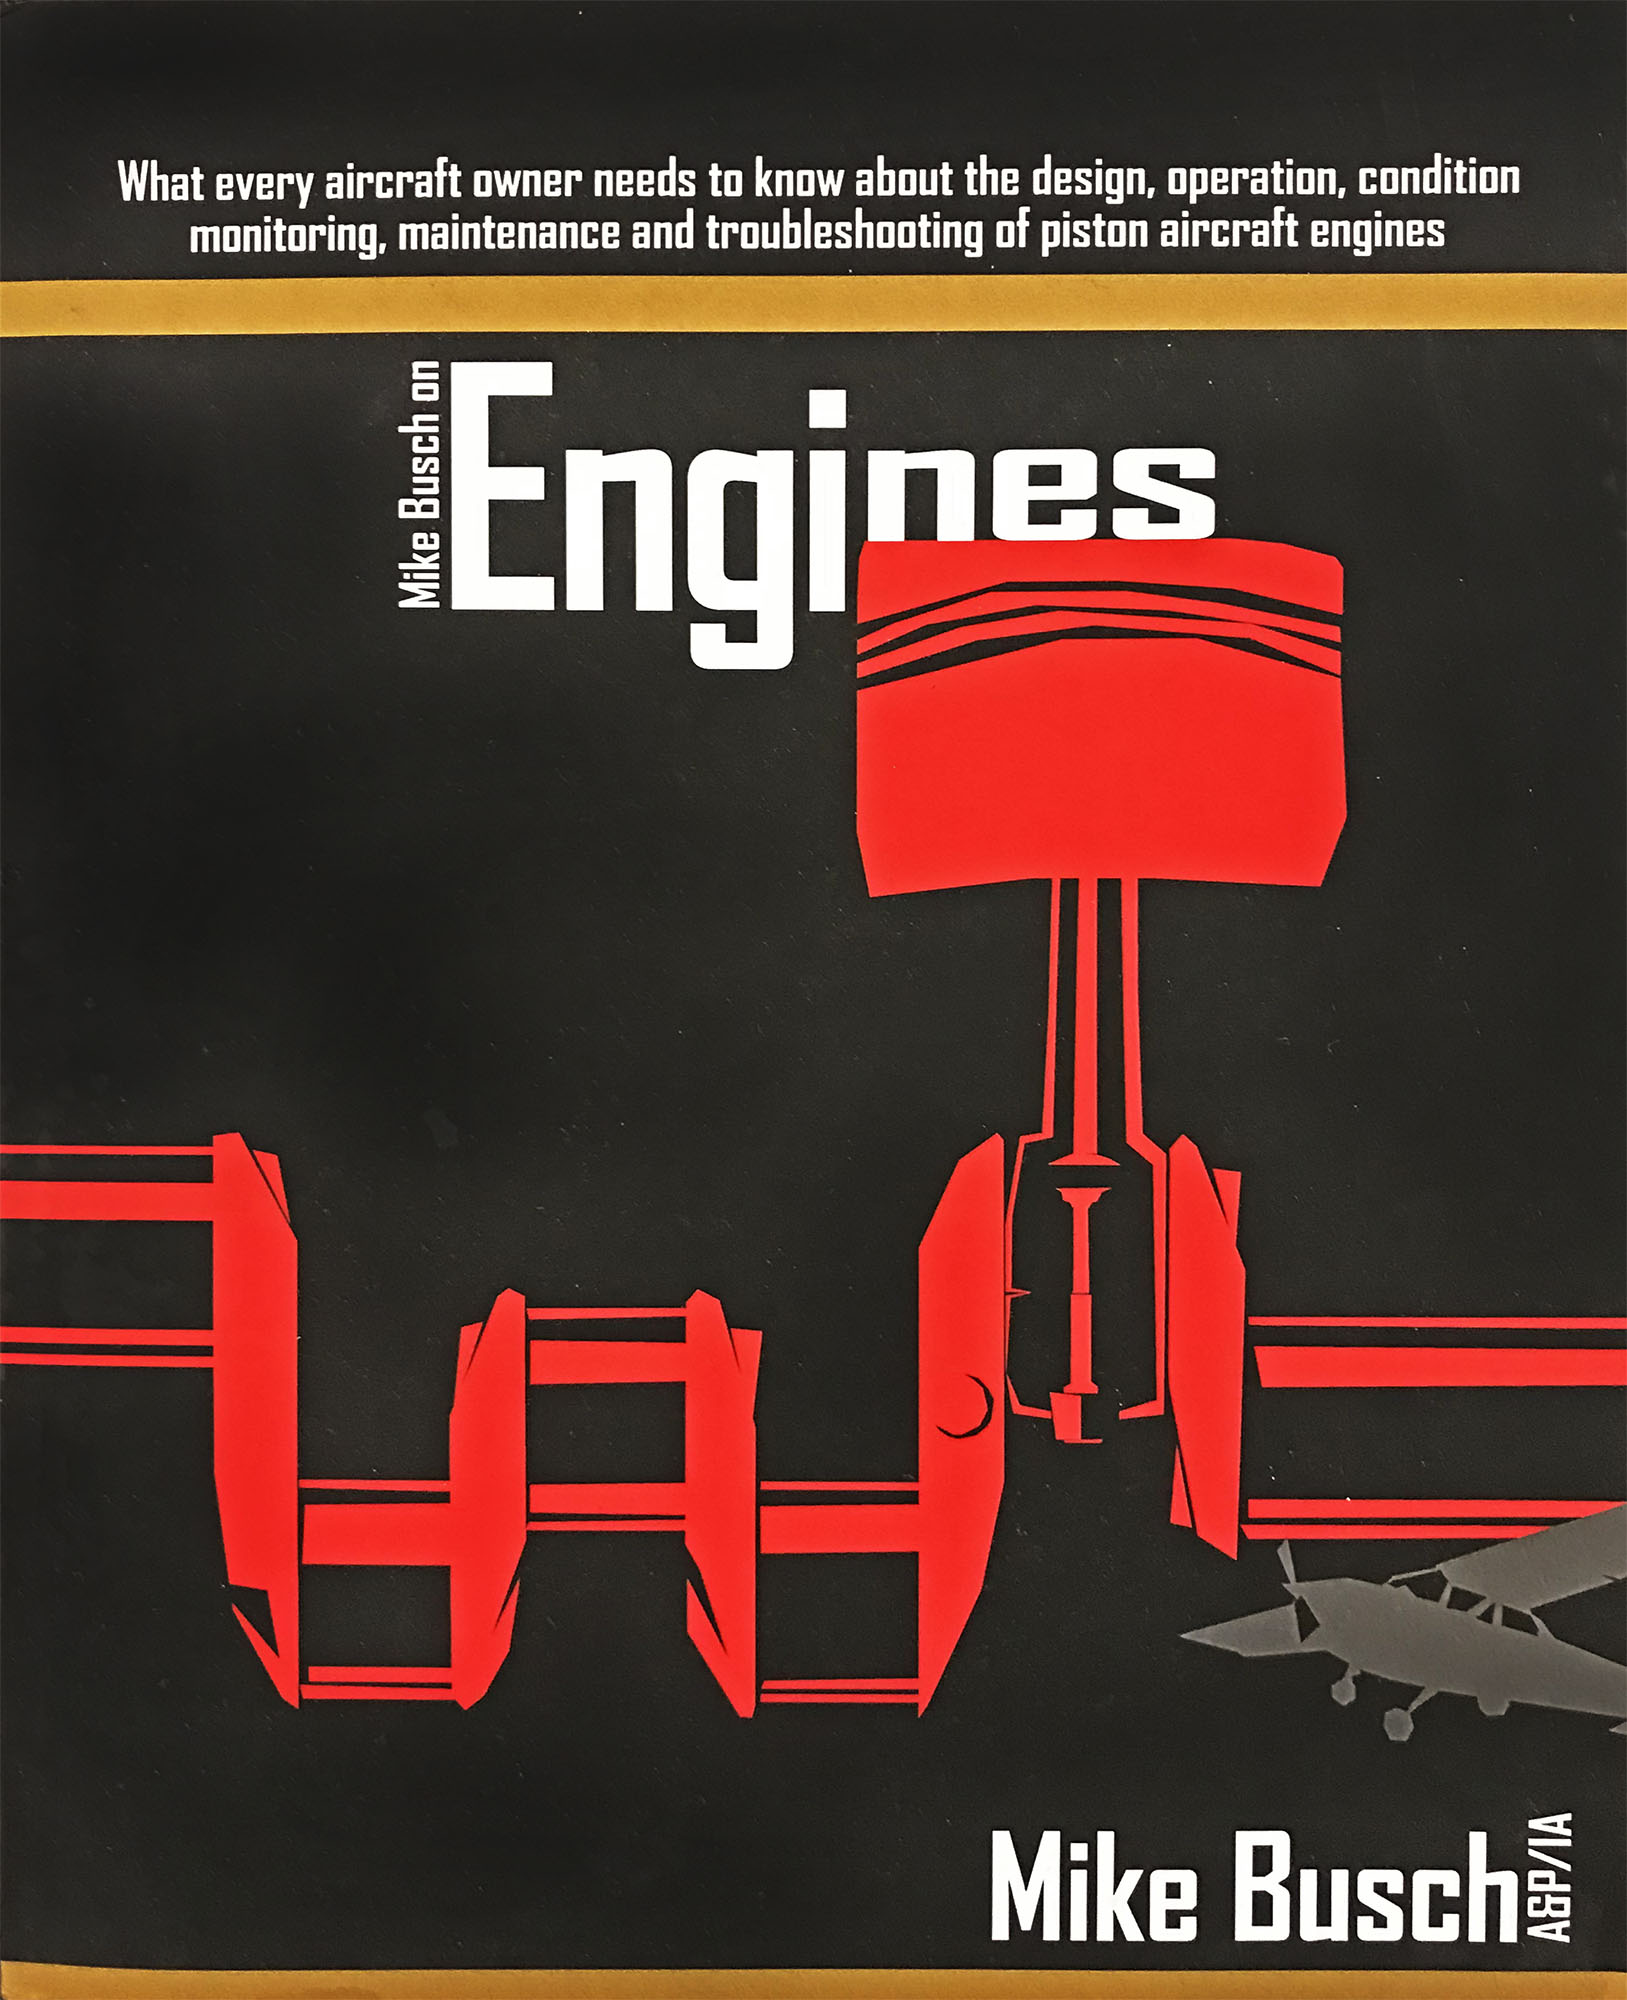 Mike Busch on Engines